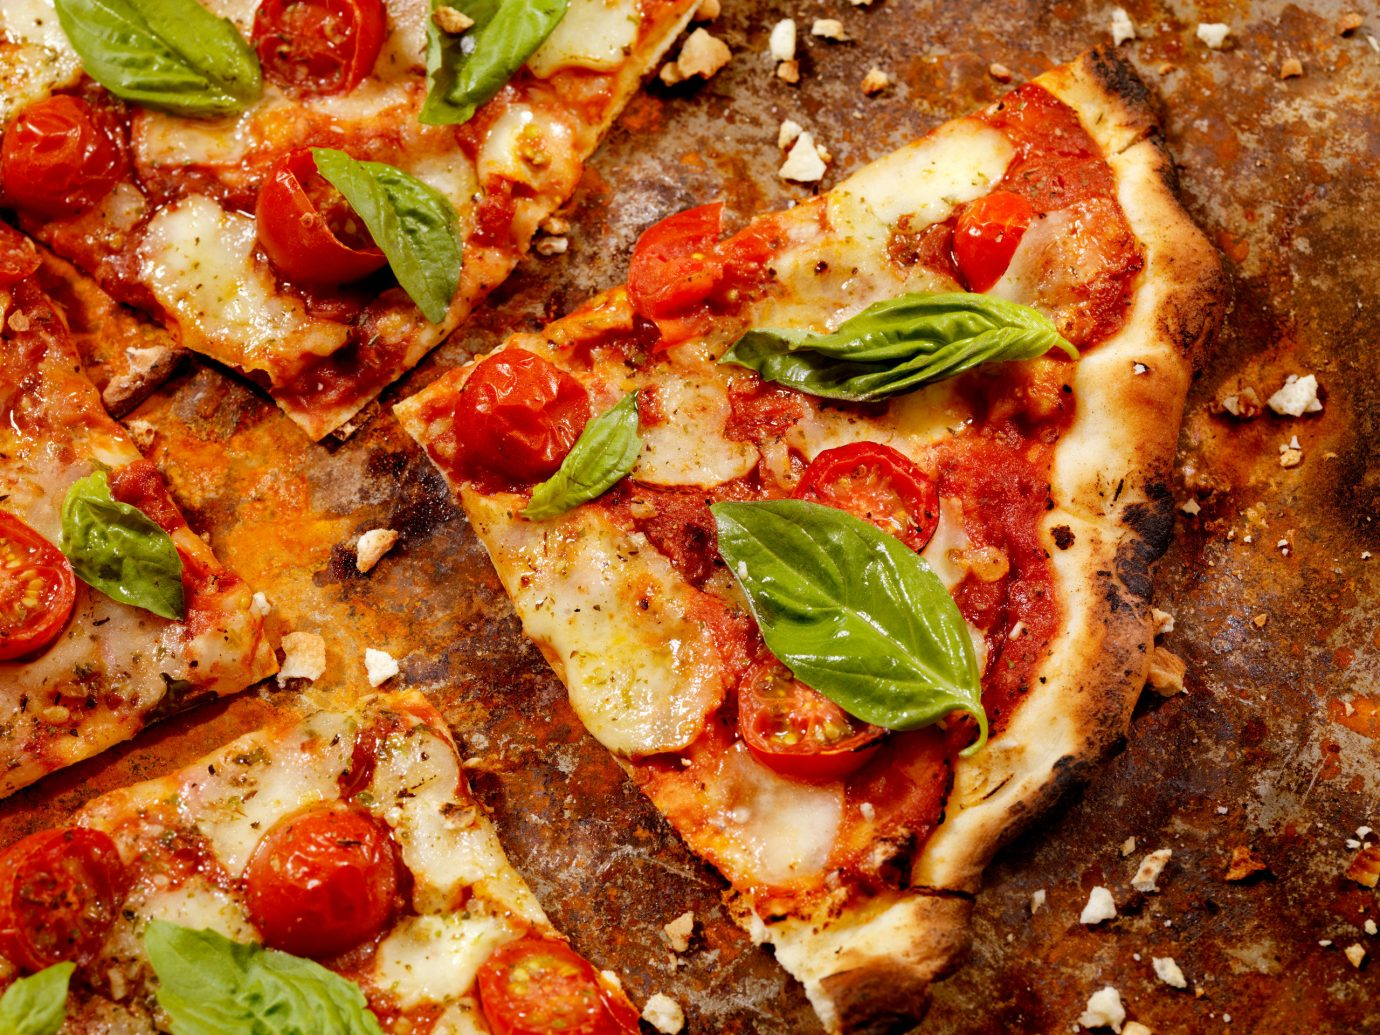 Trip Ideas pizza food dish cuisine meat italian food produce european food vegetable toppings sliced fresh